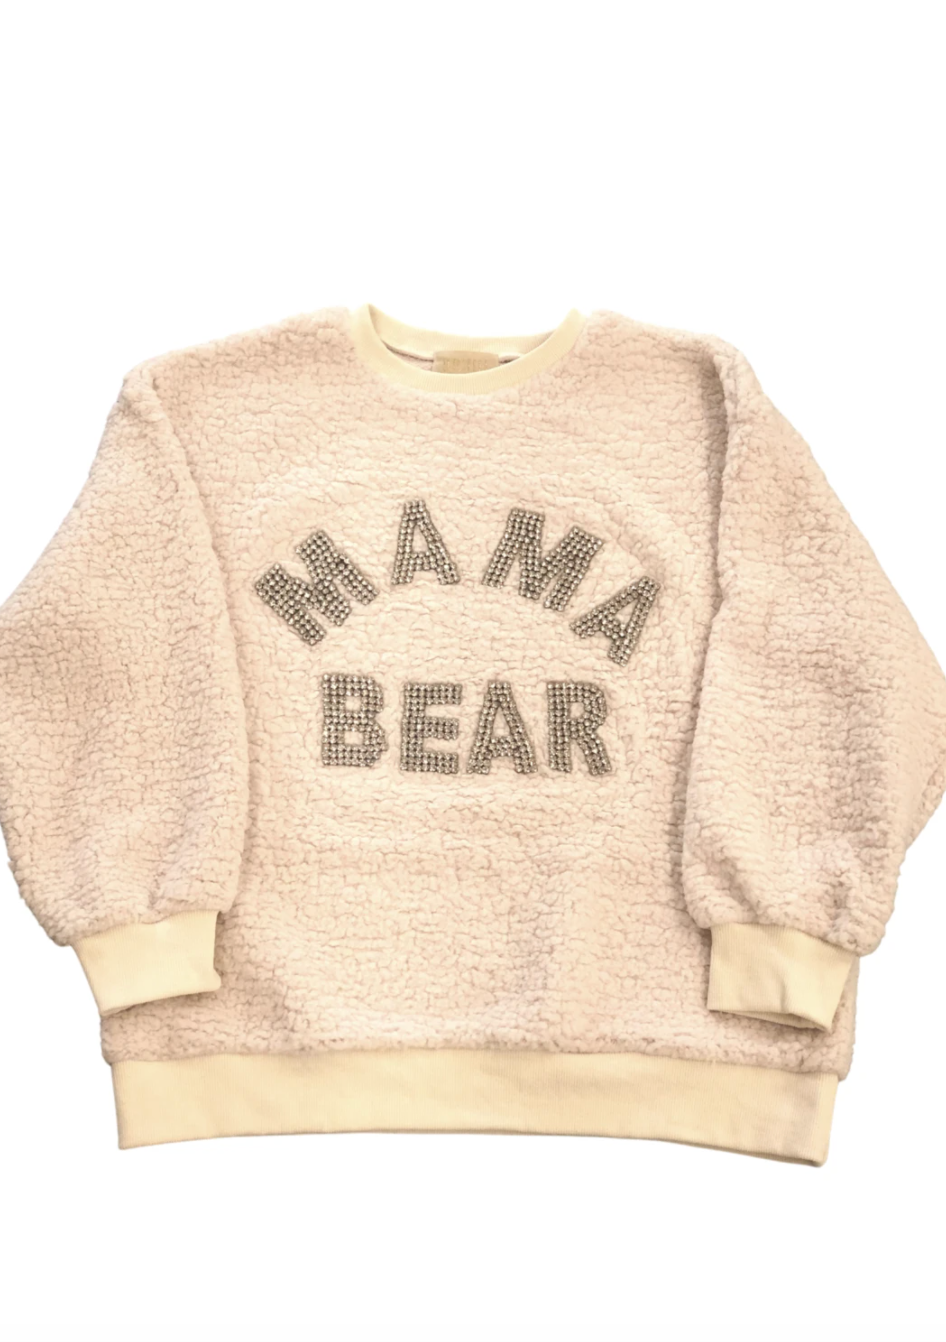 SHERPA MAMA BEAR SWEATER